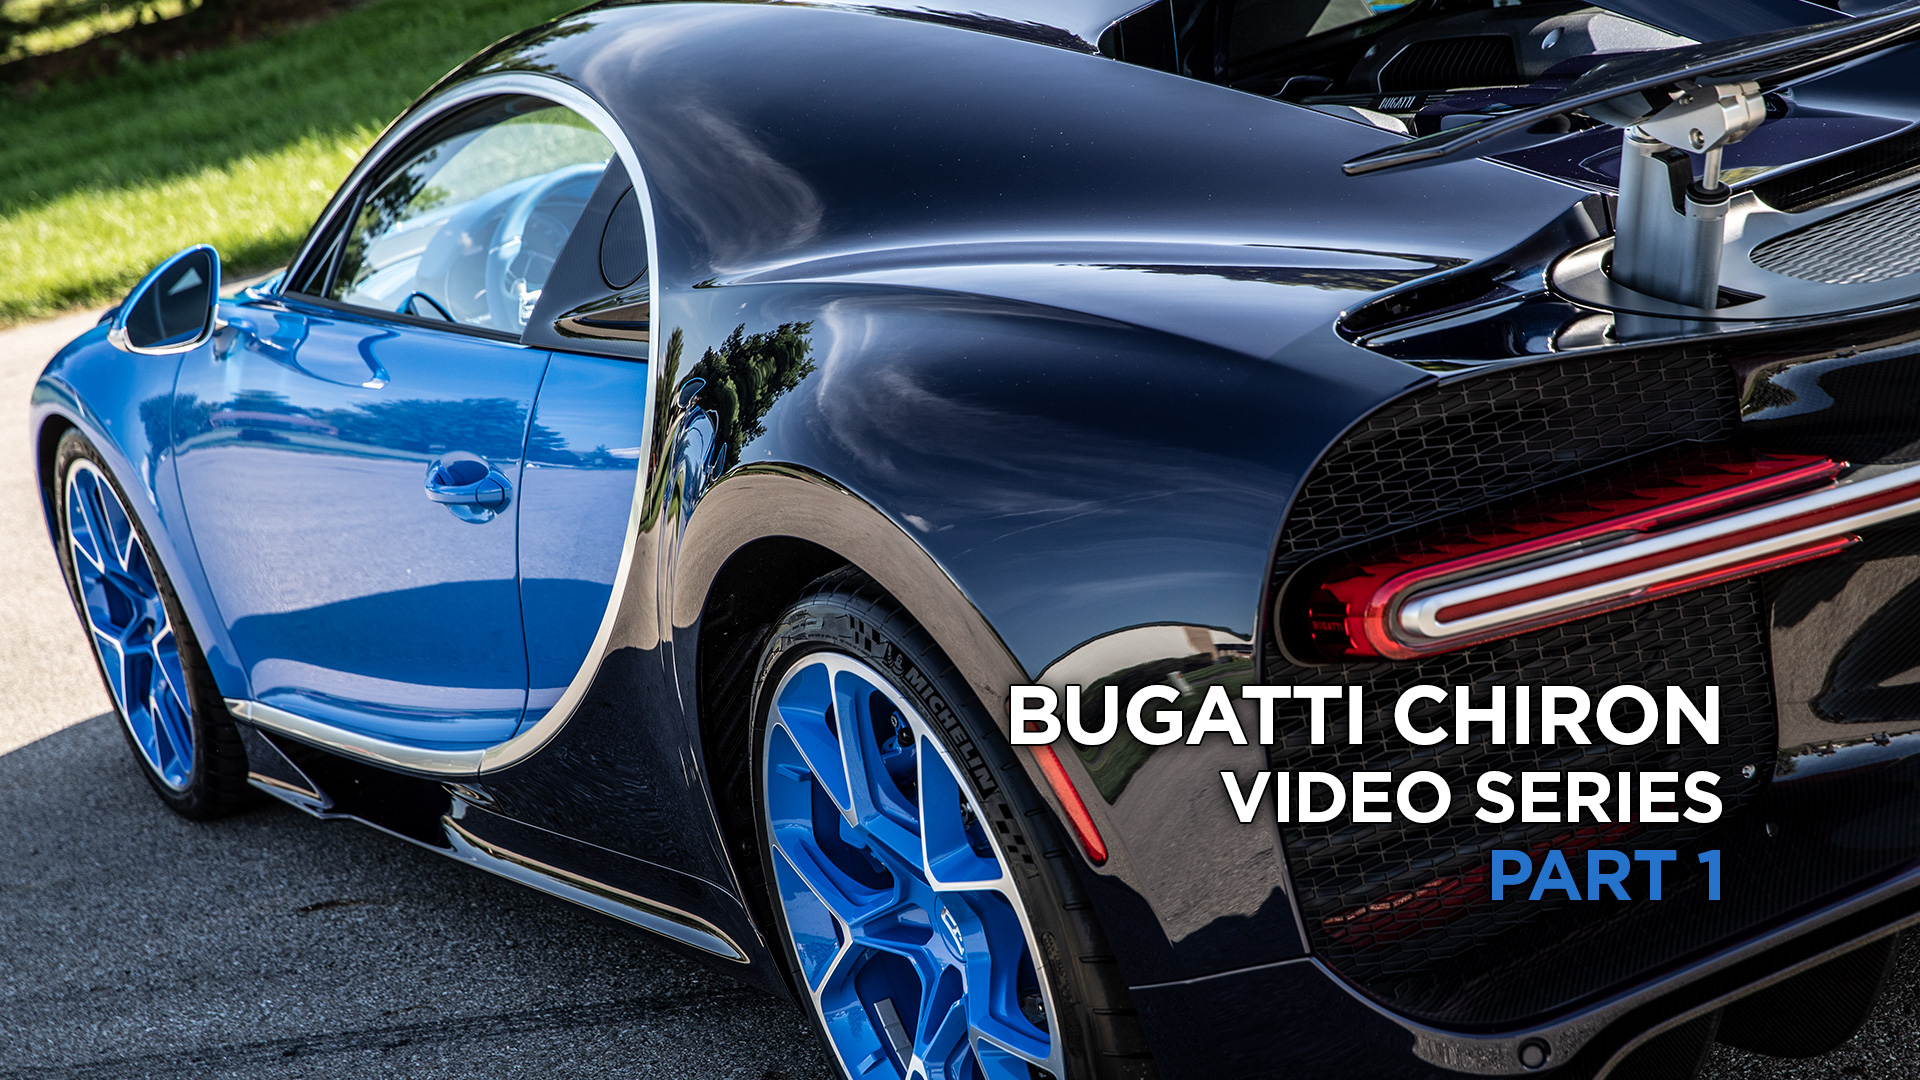 Bugatti Chiron Video Series Part 1 Esoteric Auto Detail In Columbus Ohio Detailing Clear Bra Training And Product Sales